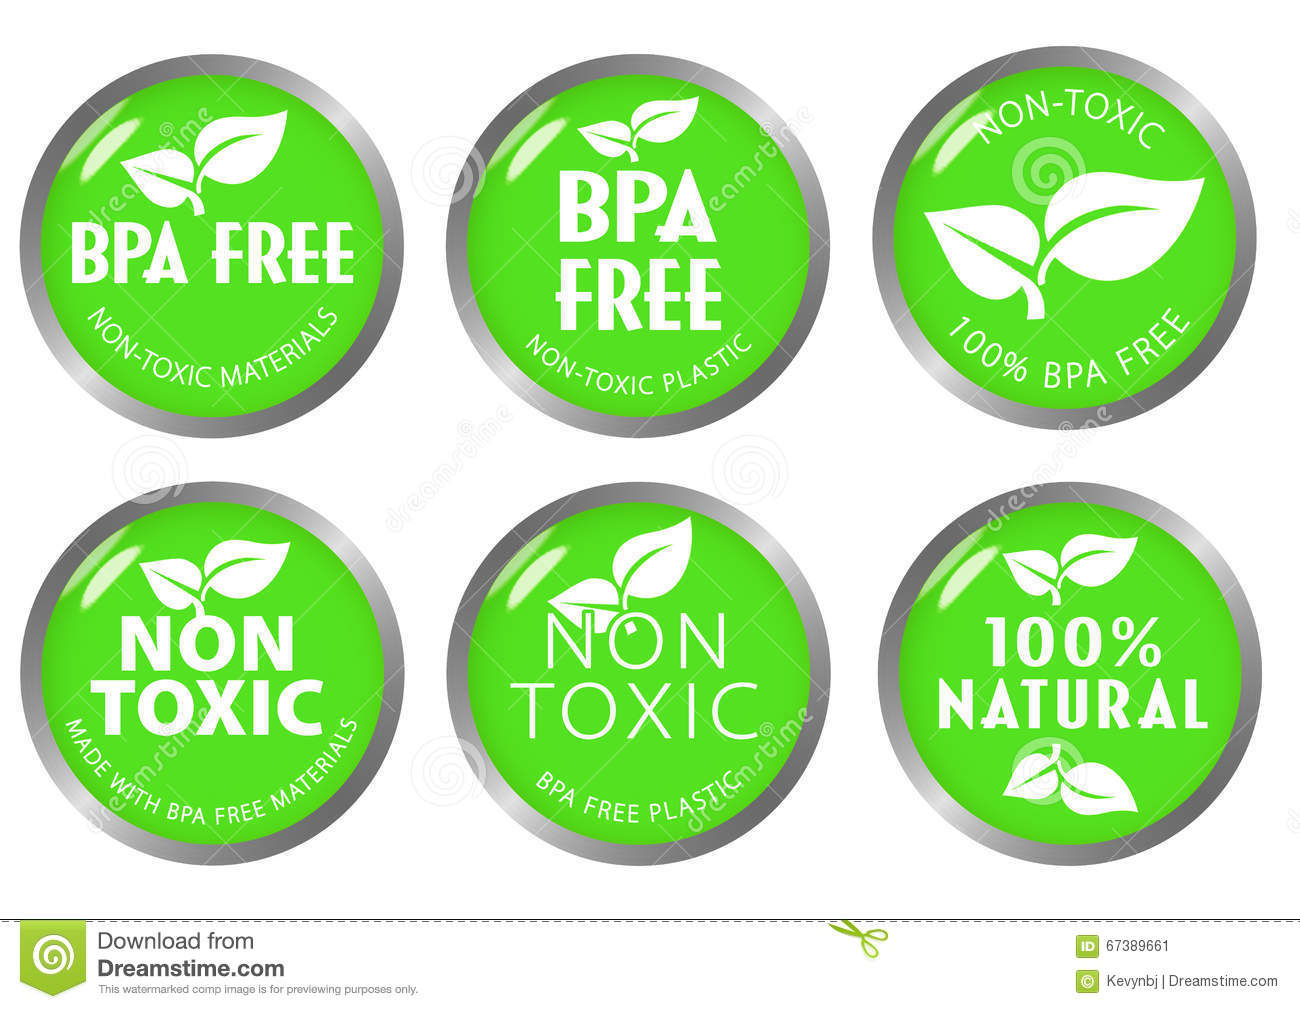 Bpa free non toxic icon label stock illustration illustration of bpa free non toxic icon label biocorpaavc Images